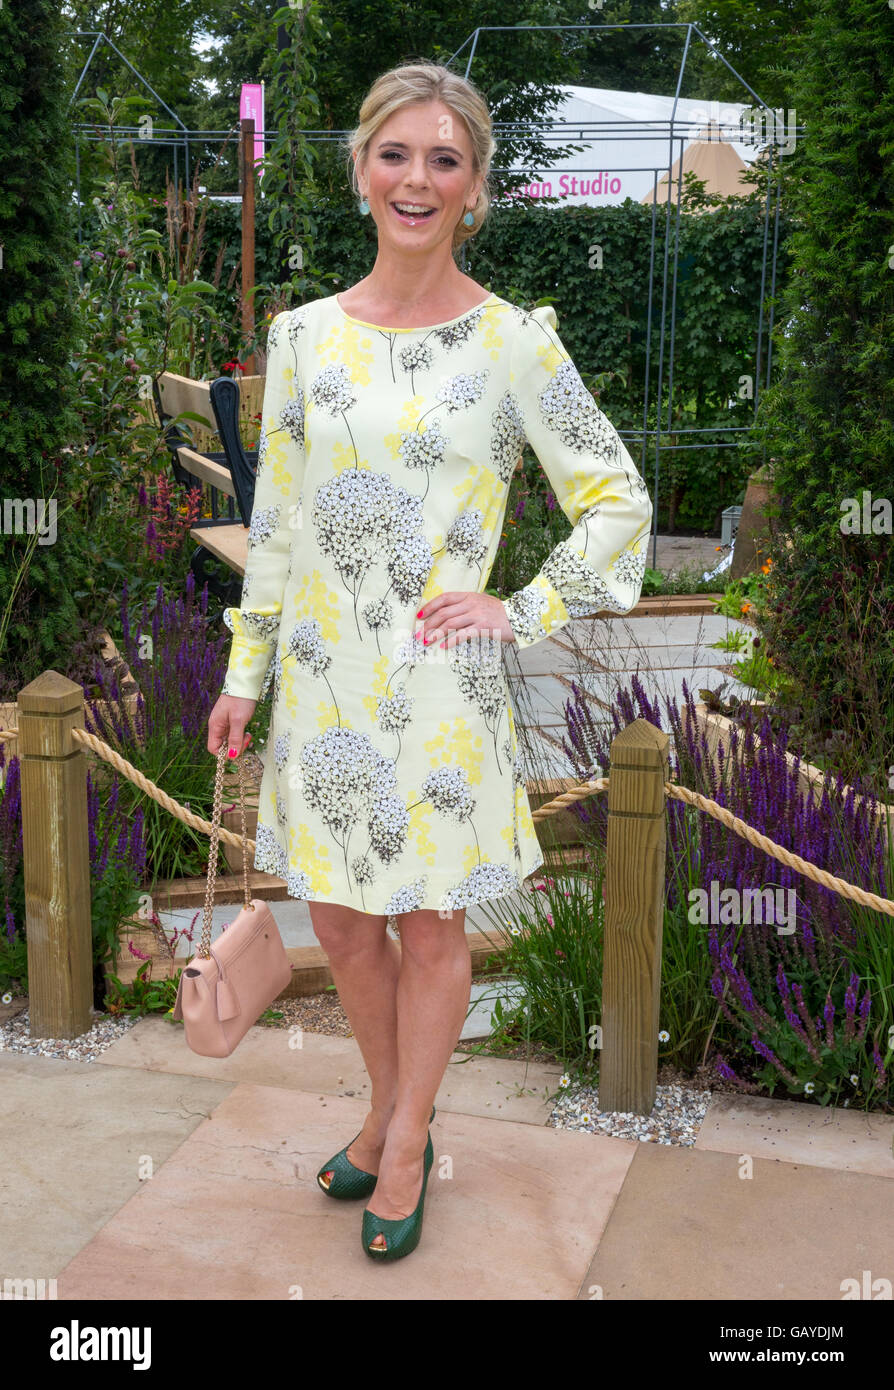 Schauspielerin Emilia Fox in der RHS Hampton Court Flower Show 2016 Stockbild